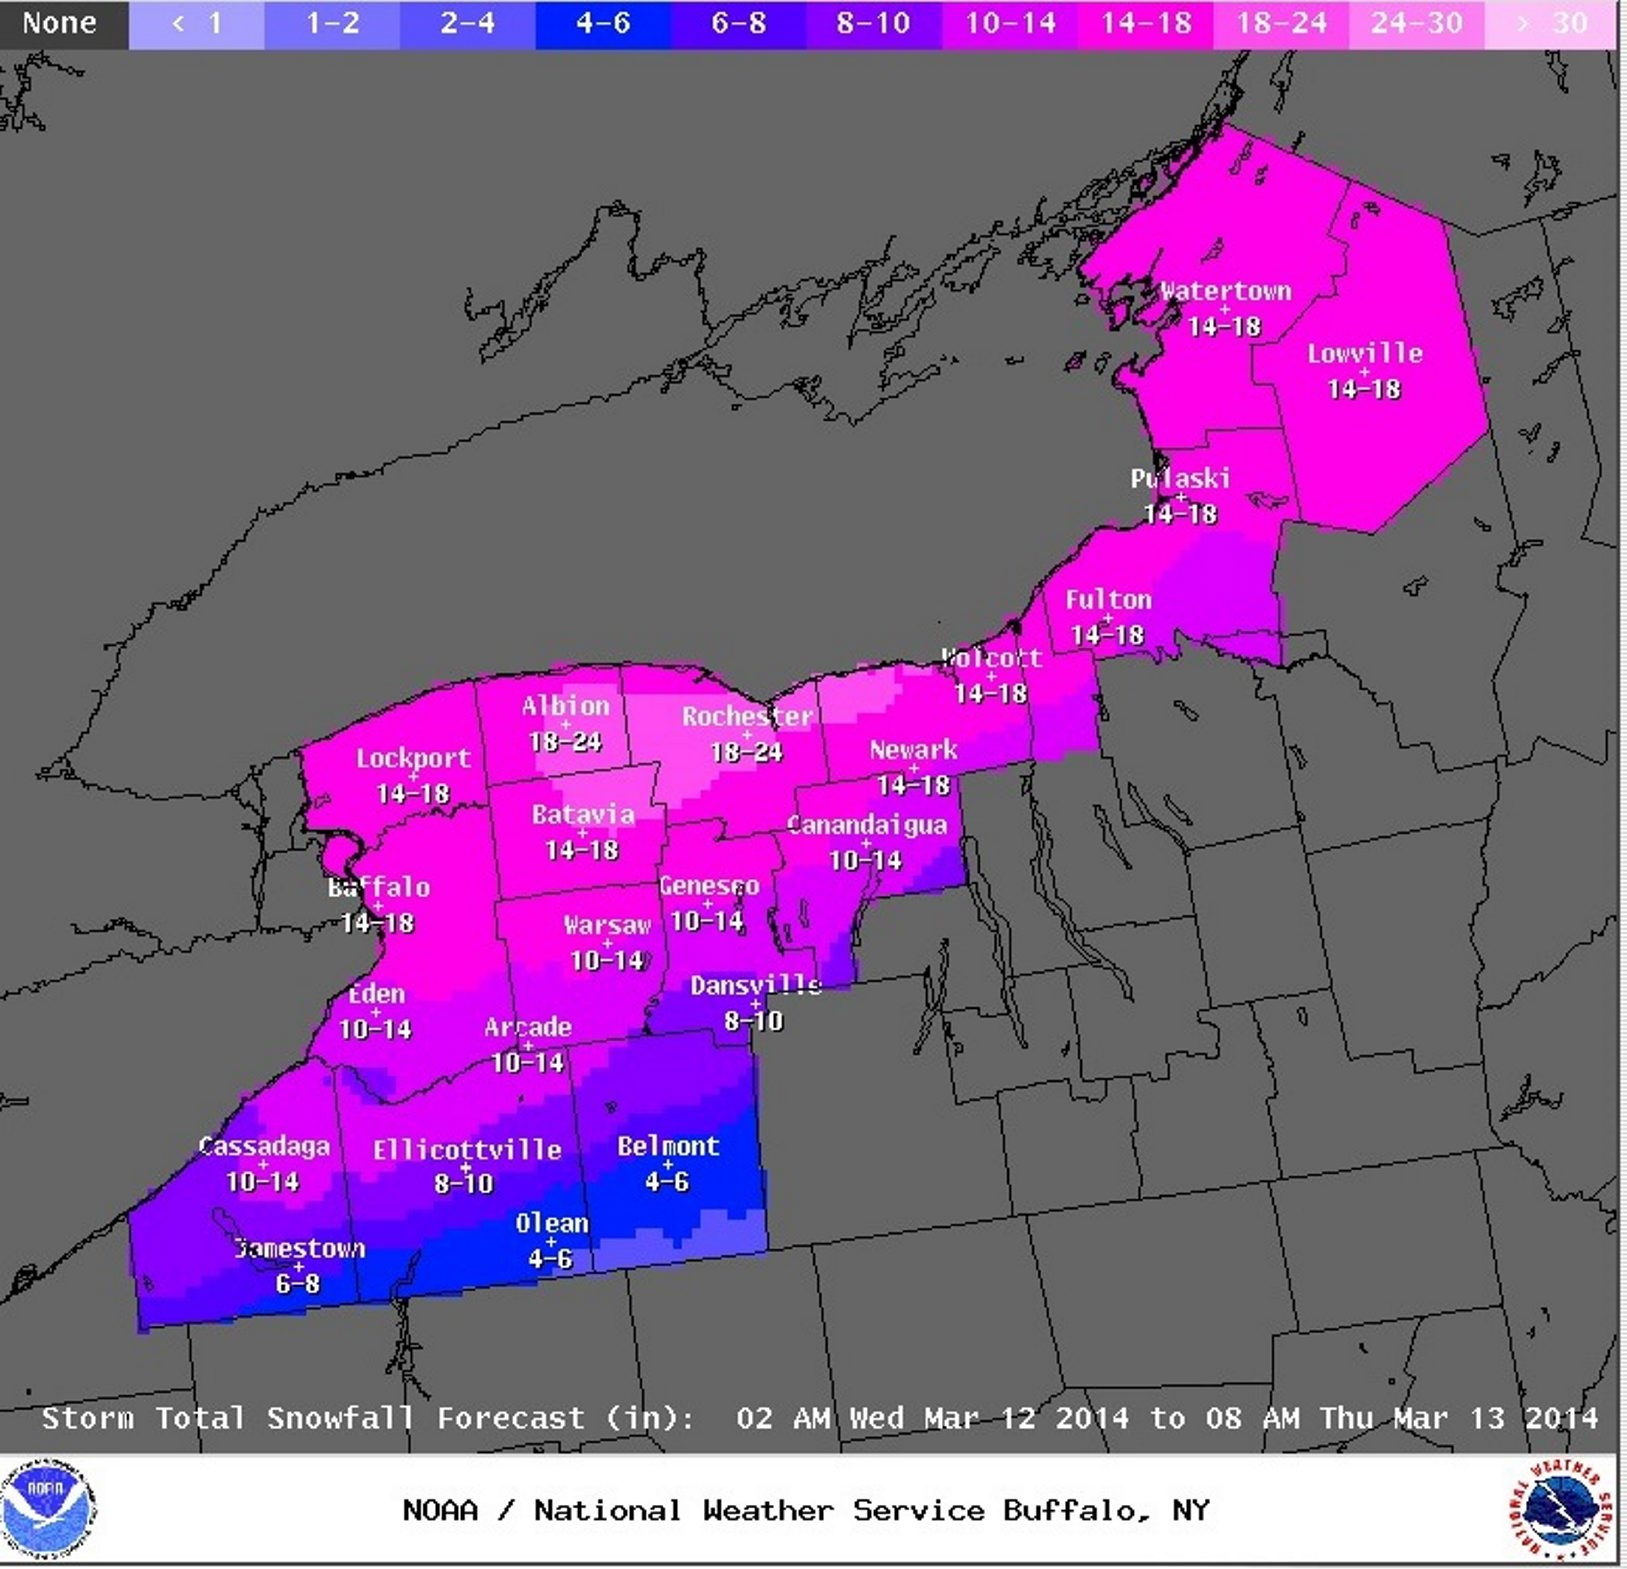 National Weather Service map shows expected snowfall totals from the coming storm.